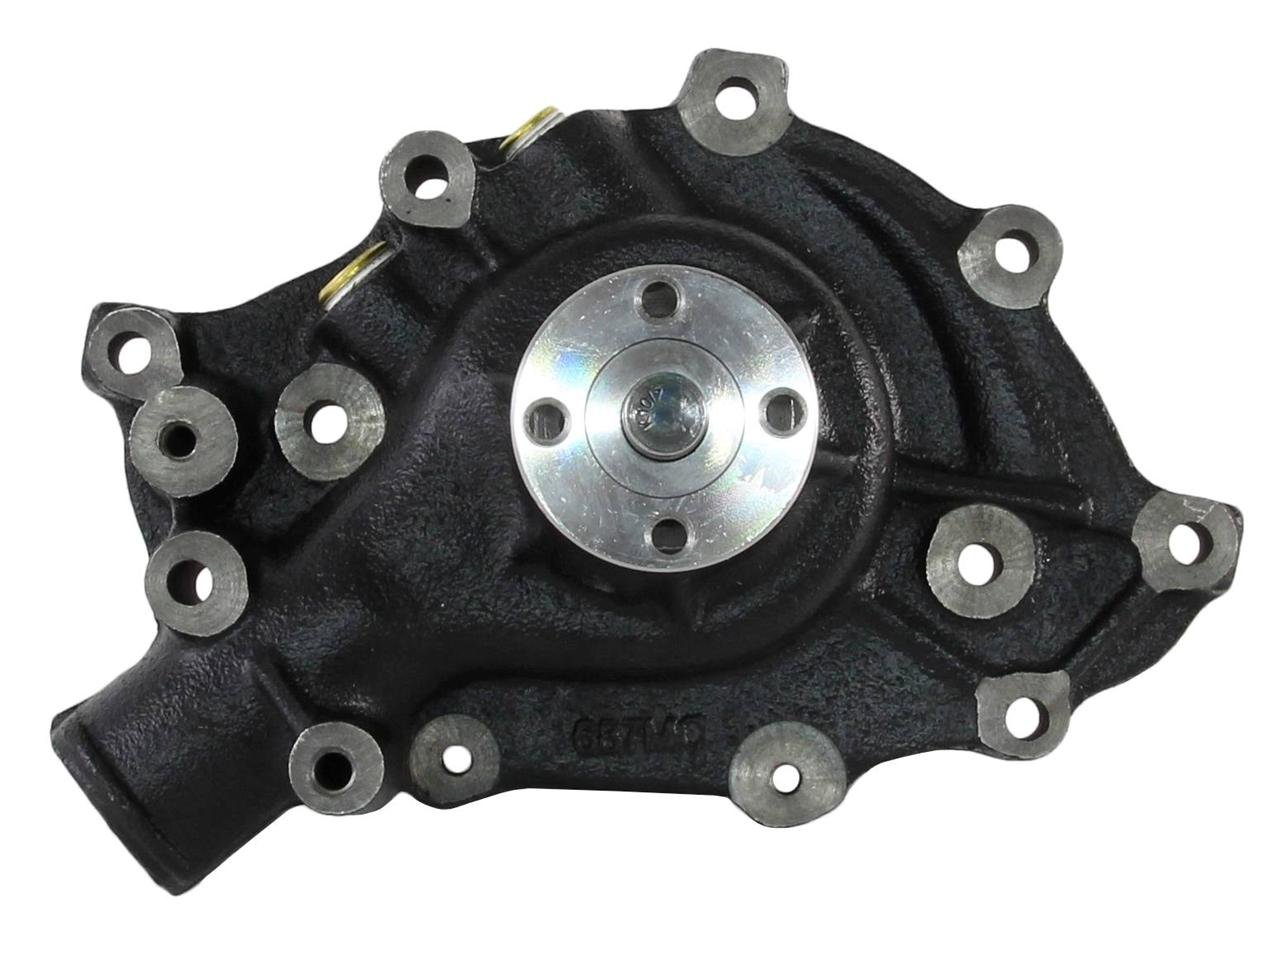 Amazon.com: NEW WATER PUMP FITS FORD MARINE SMALL BLOCK V8 289 302 351  ENGINES OMC 18-3584 9-42607 WP520M 982517 71683A1 982517: Automotive